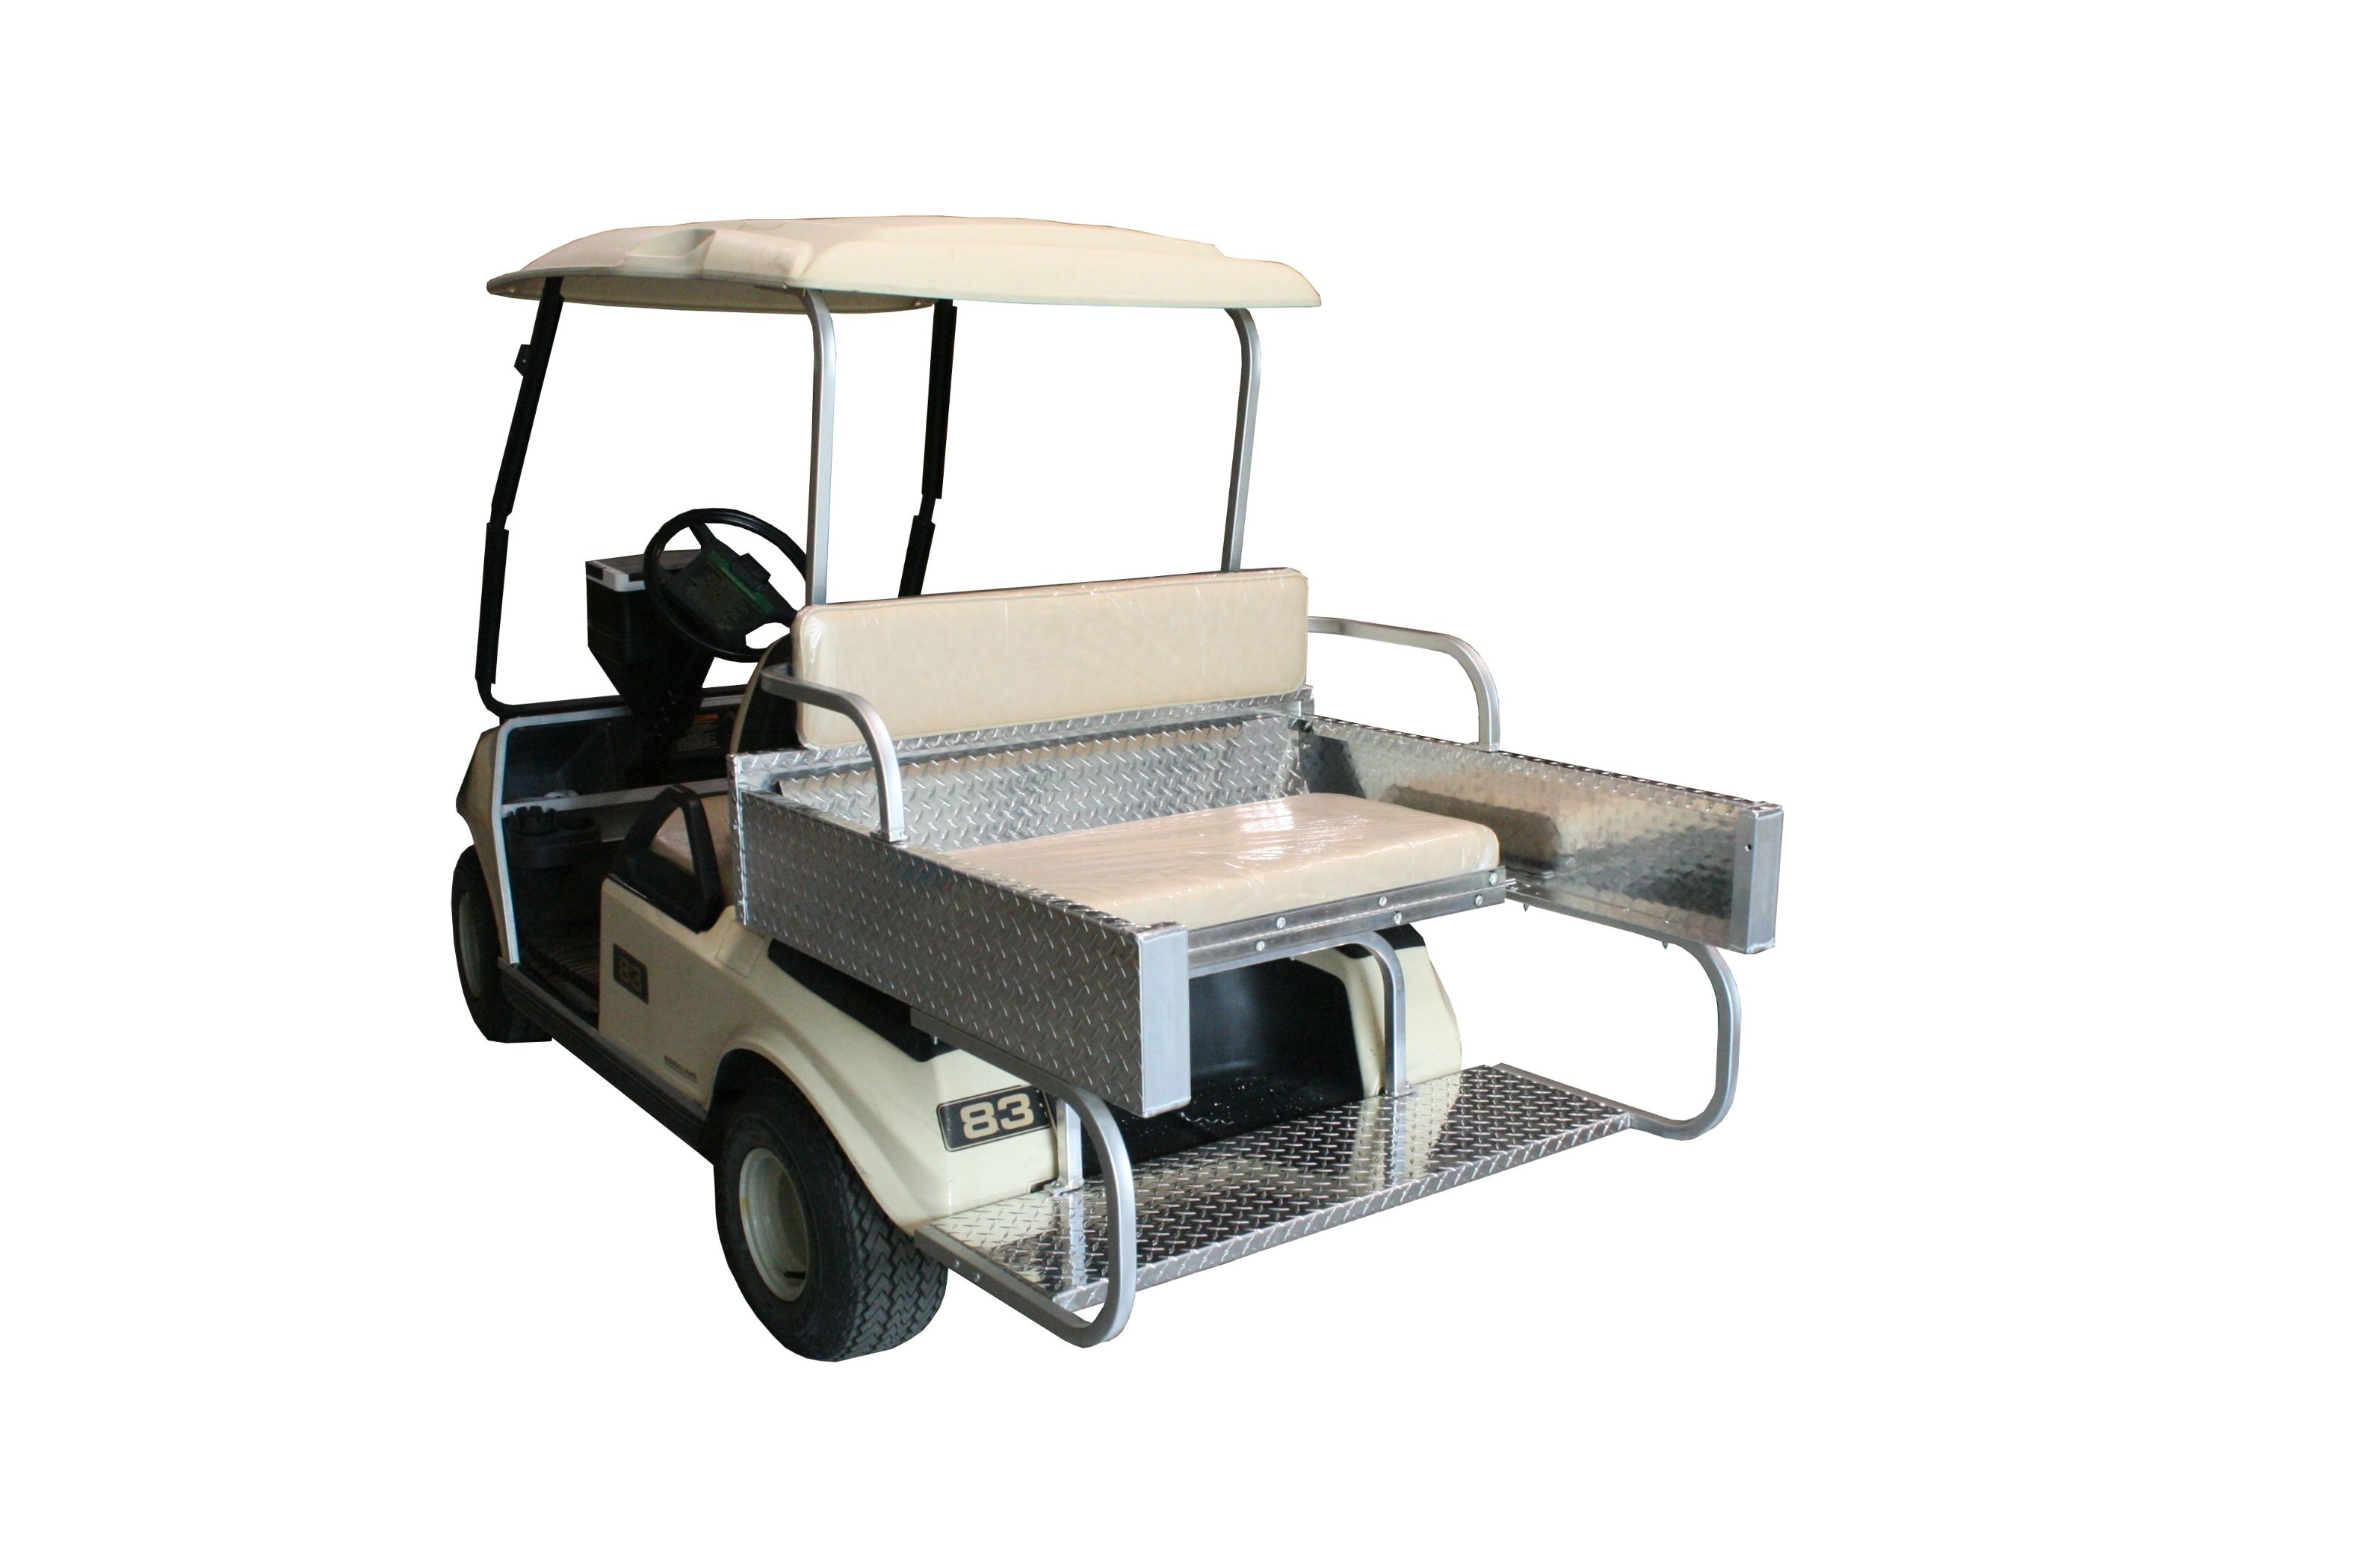 Rear Seat Kit In The Up Position On A Club Car DS One Year Warranty